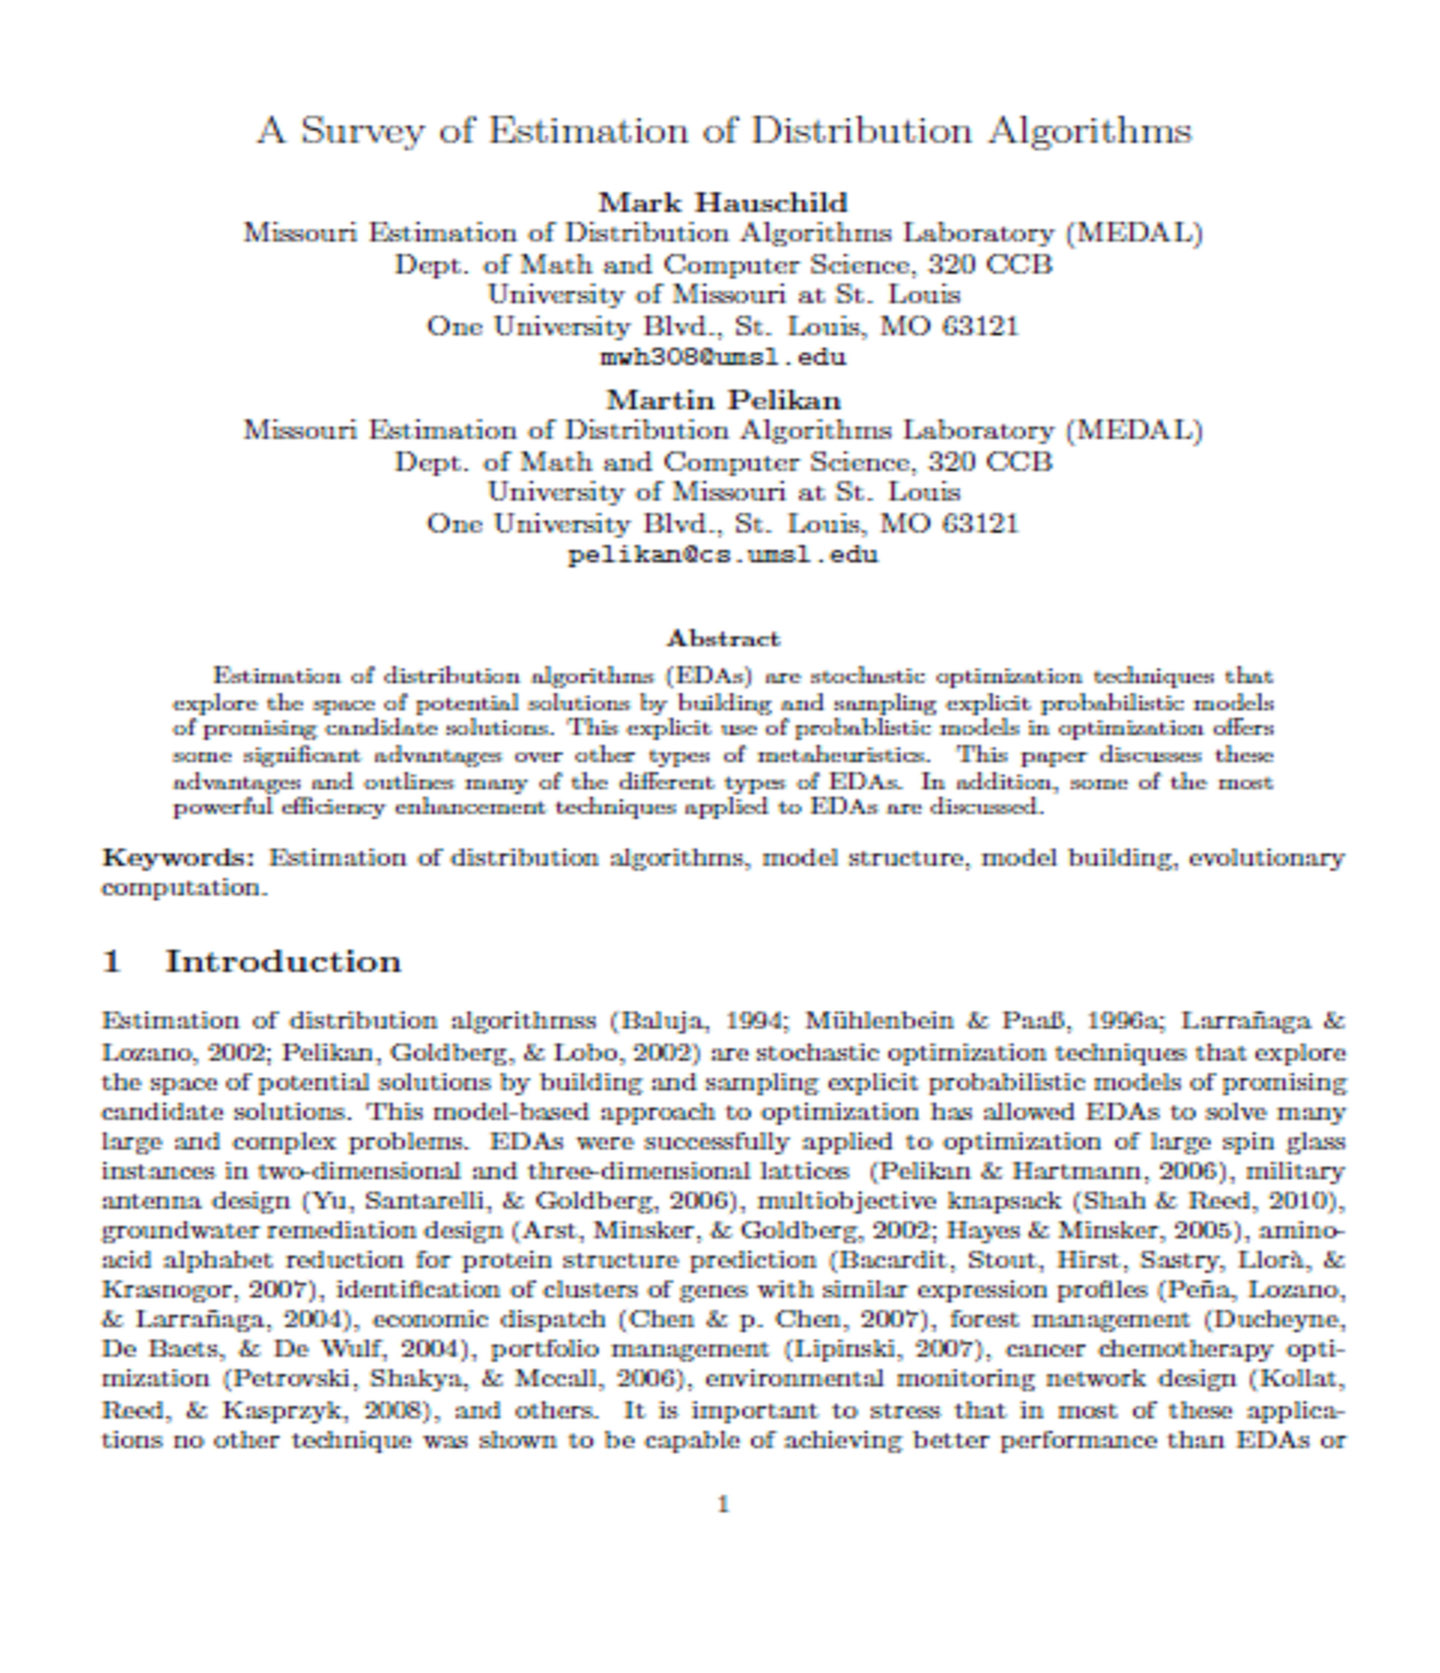 A Survey of Estimation of Distribution Algorithms 23